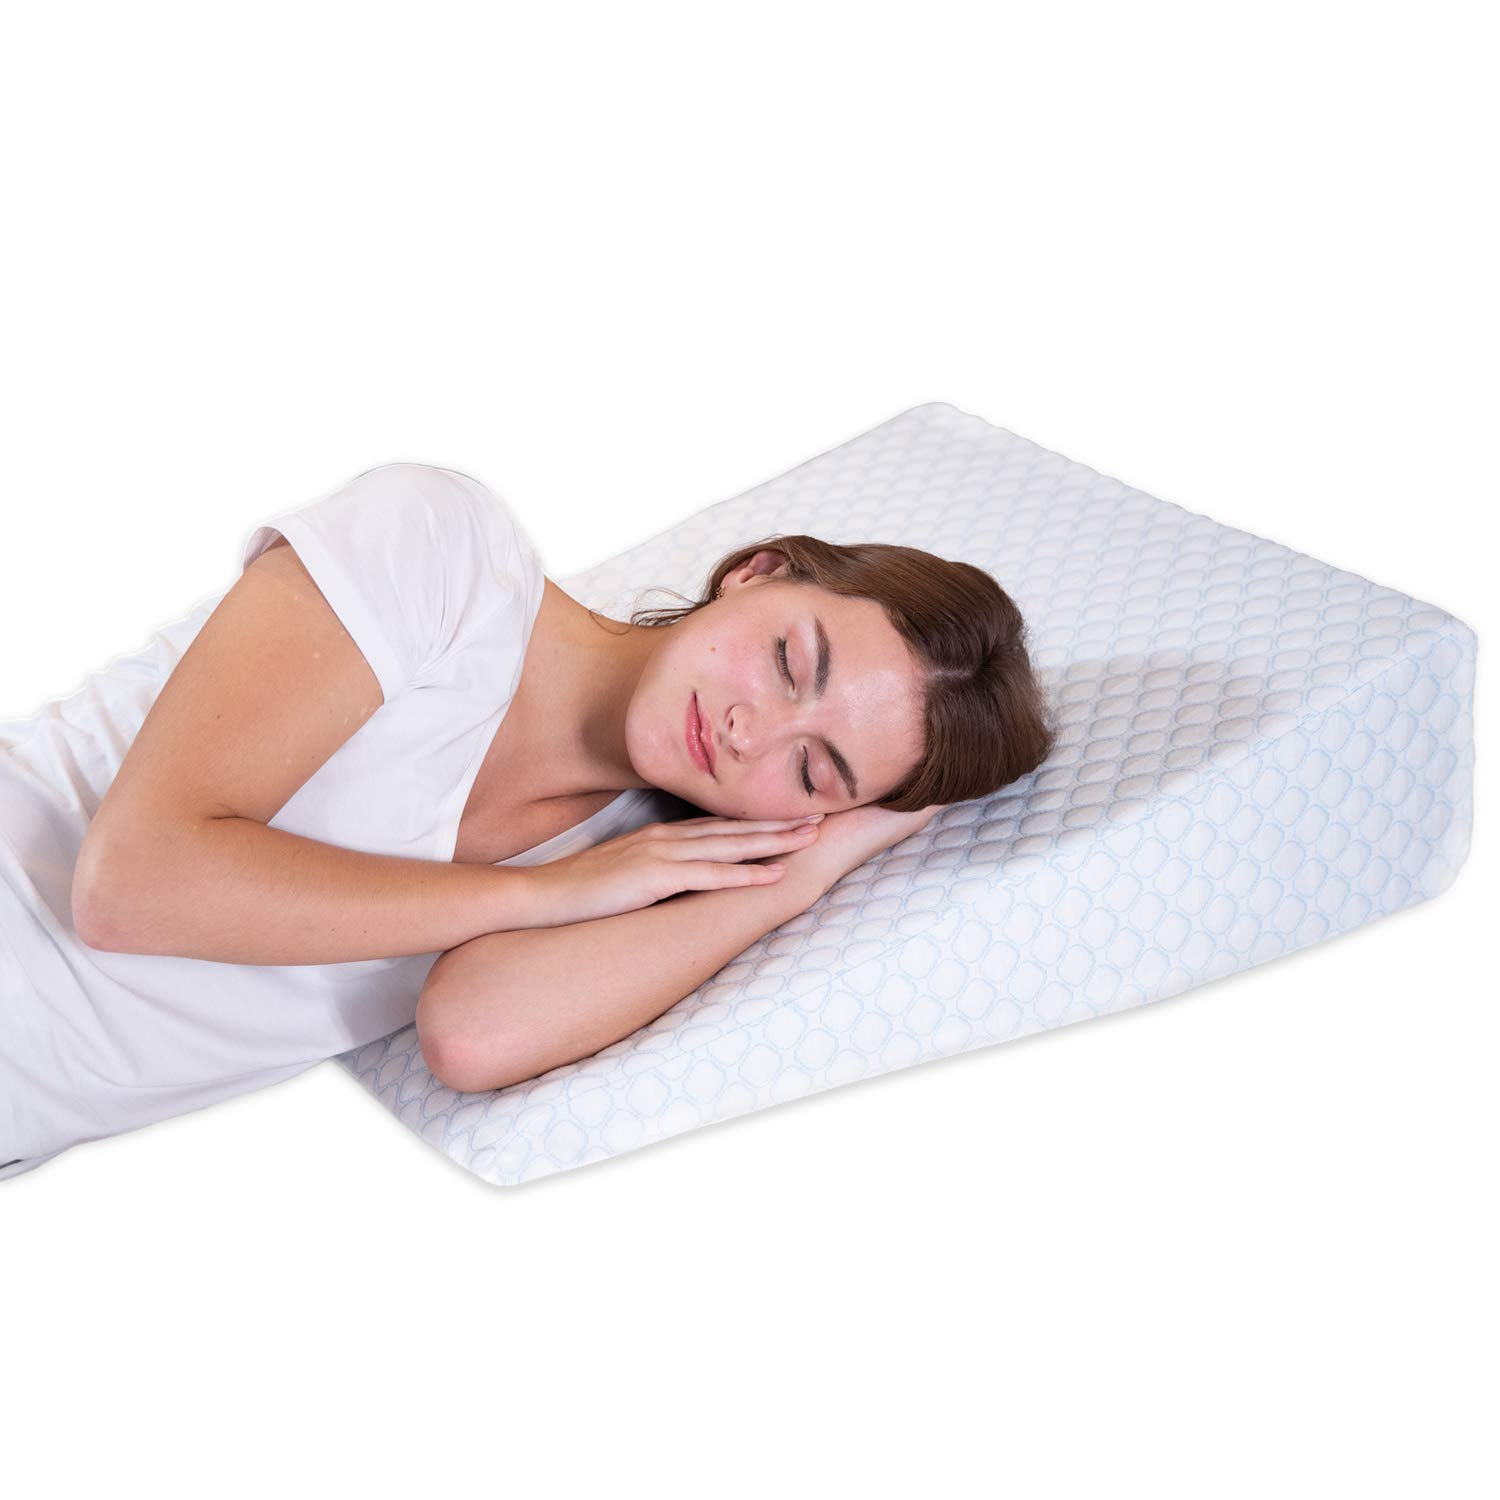 Bed Wedge Pillow with 1.5 Inch Memory Foam Top, (24 x 28 x 7.5 Inches), Removable and Washable Cover, Perfect for Sleeping or Reading, Leg Elevation, Back Support, LENORA 7.5 Inch Wedge by Lenora